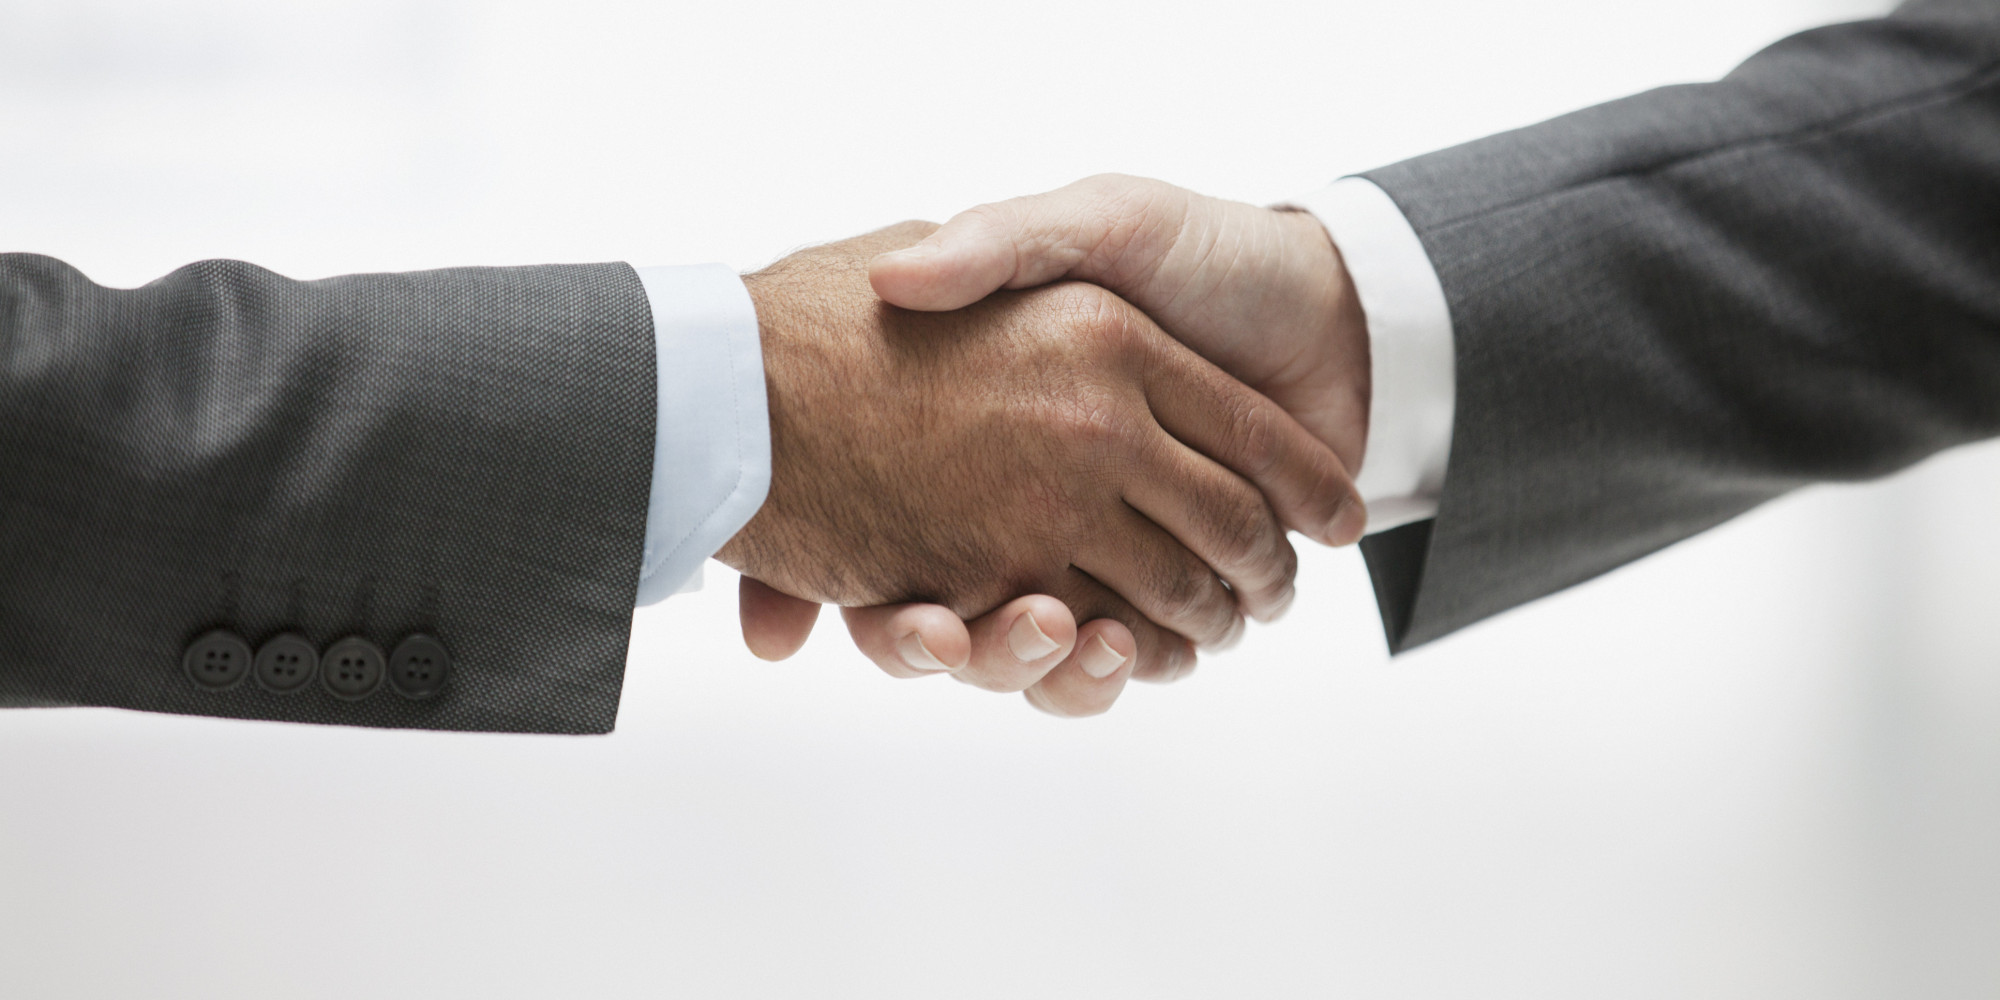 Fist Bumps Spread Fewer Bacteria Than Handshakes High